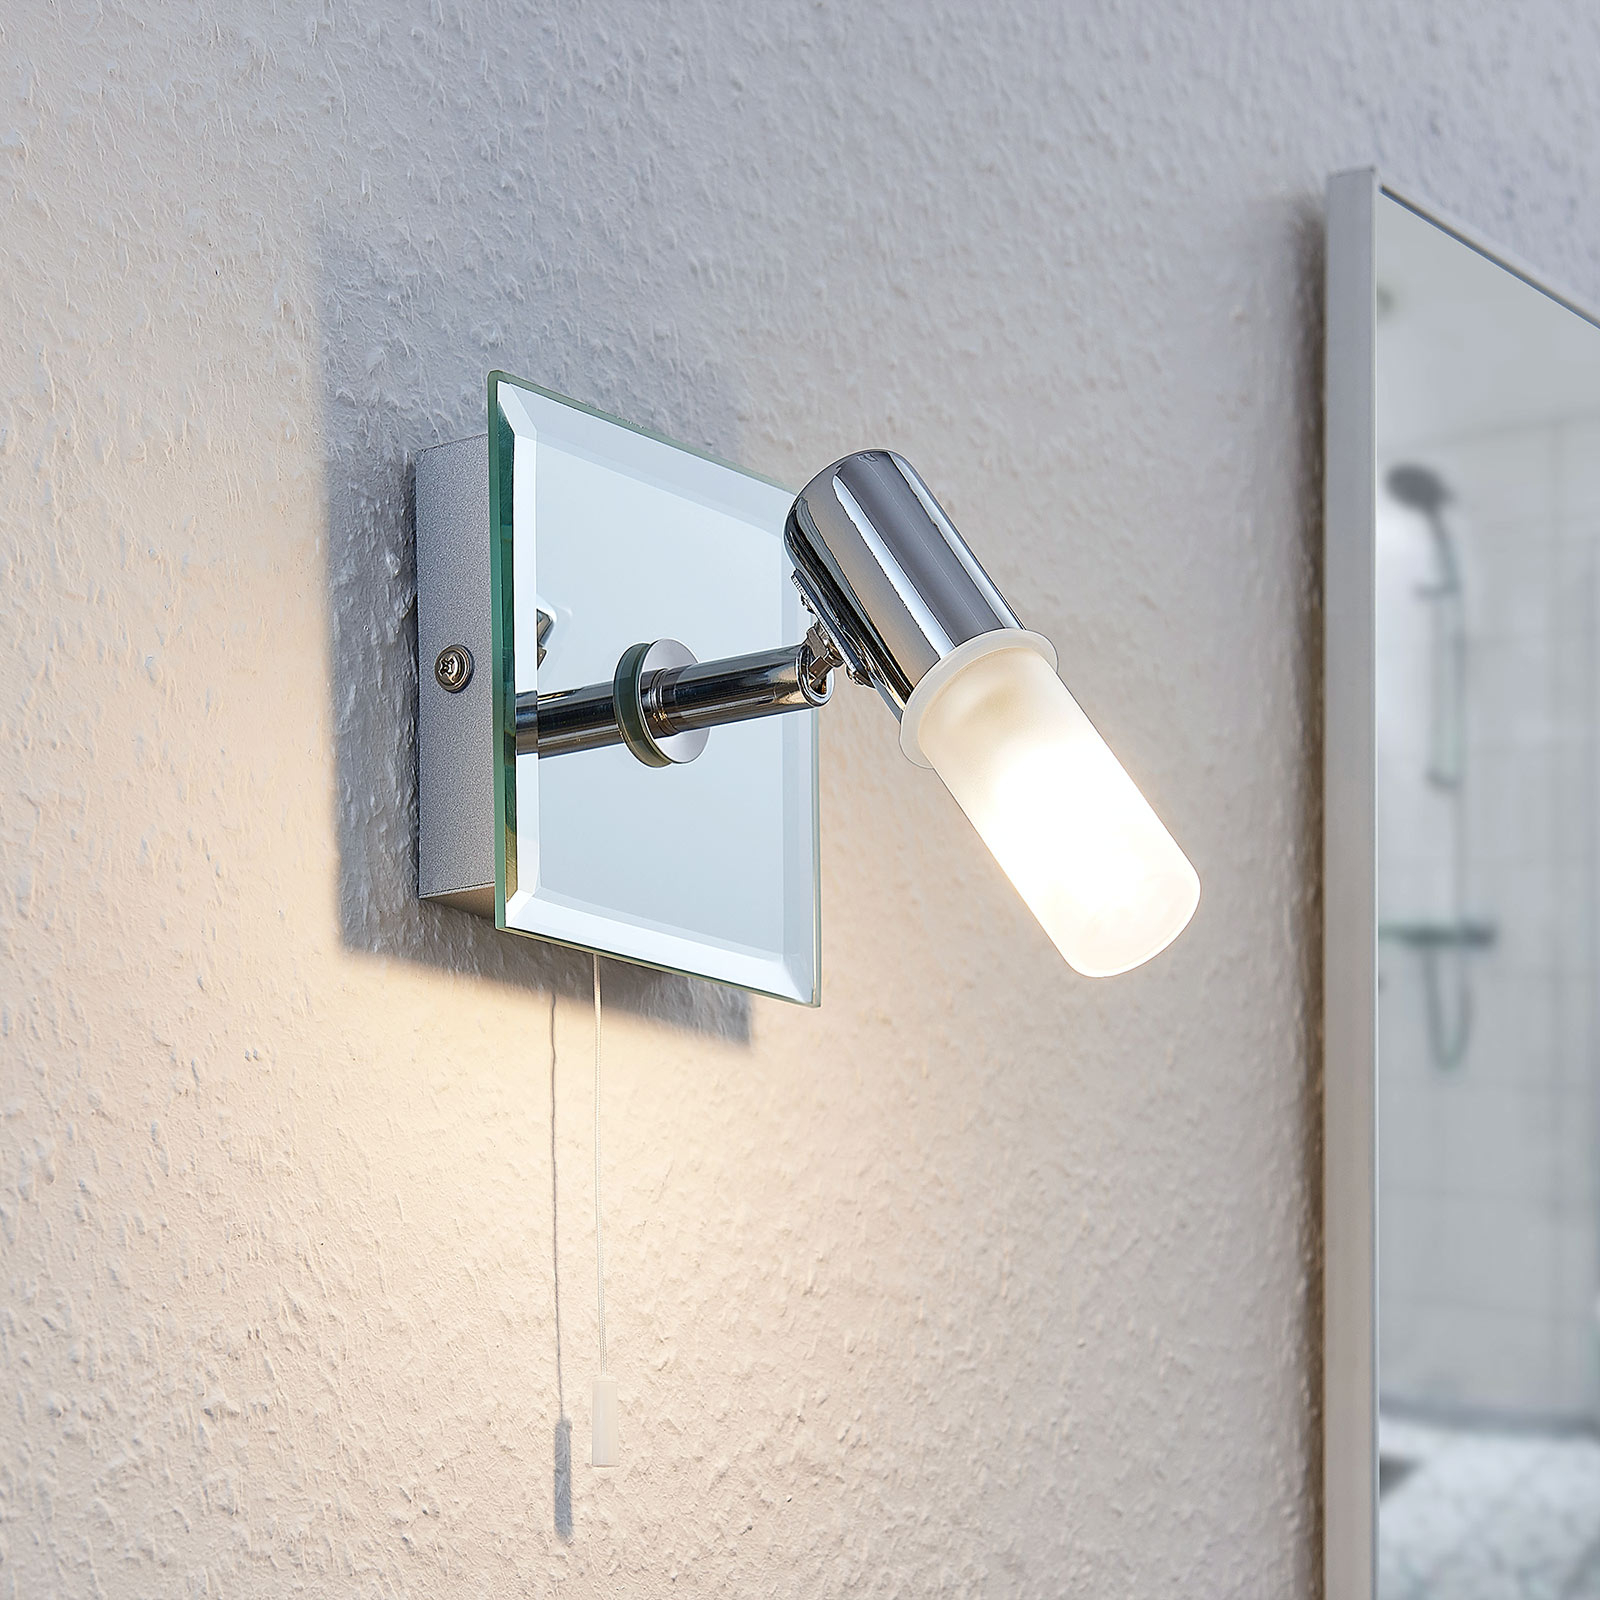 Zela wall light, bathroom light with pull switch_9624383_1